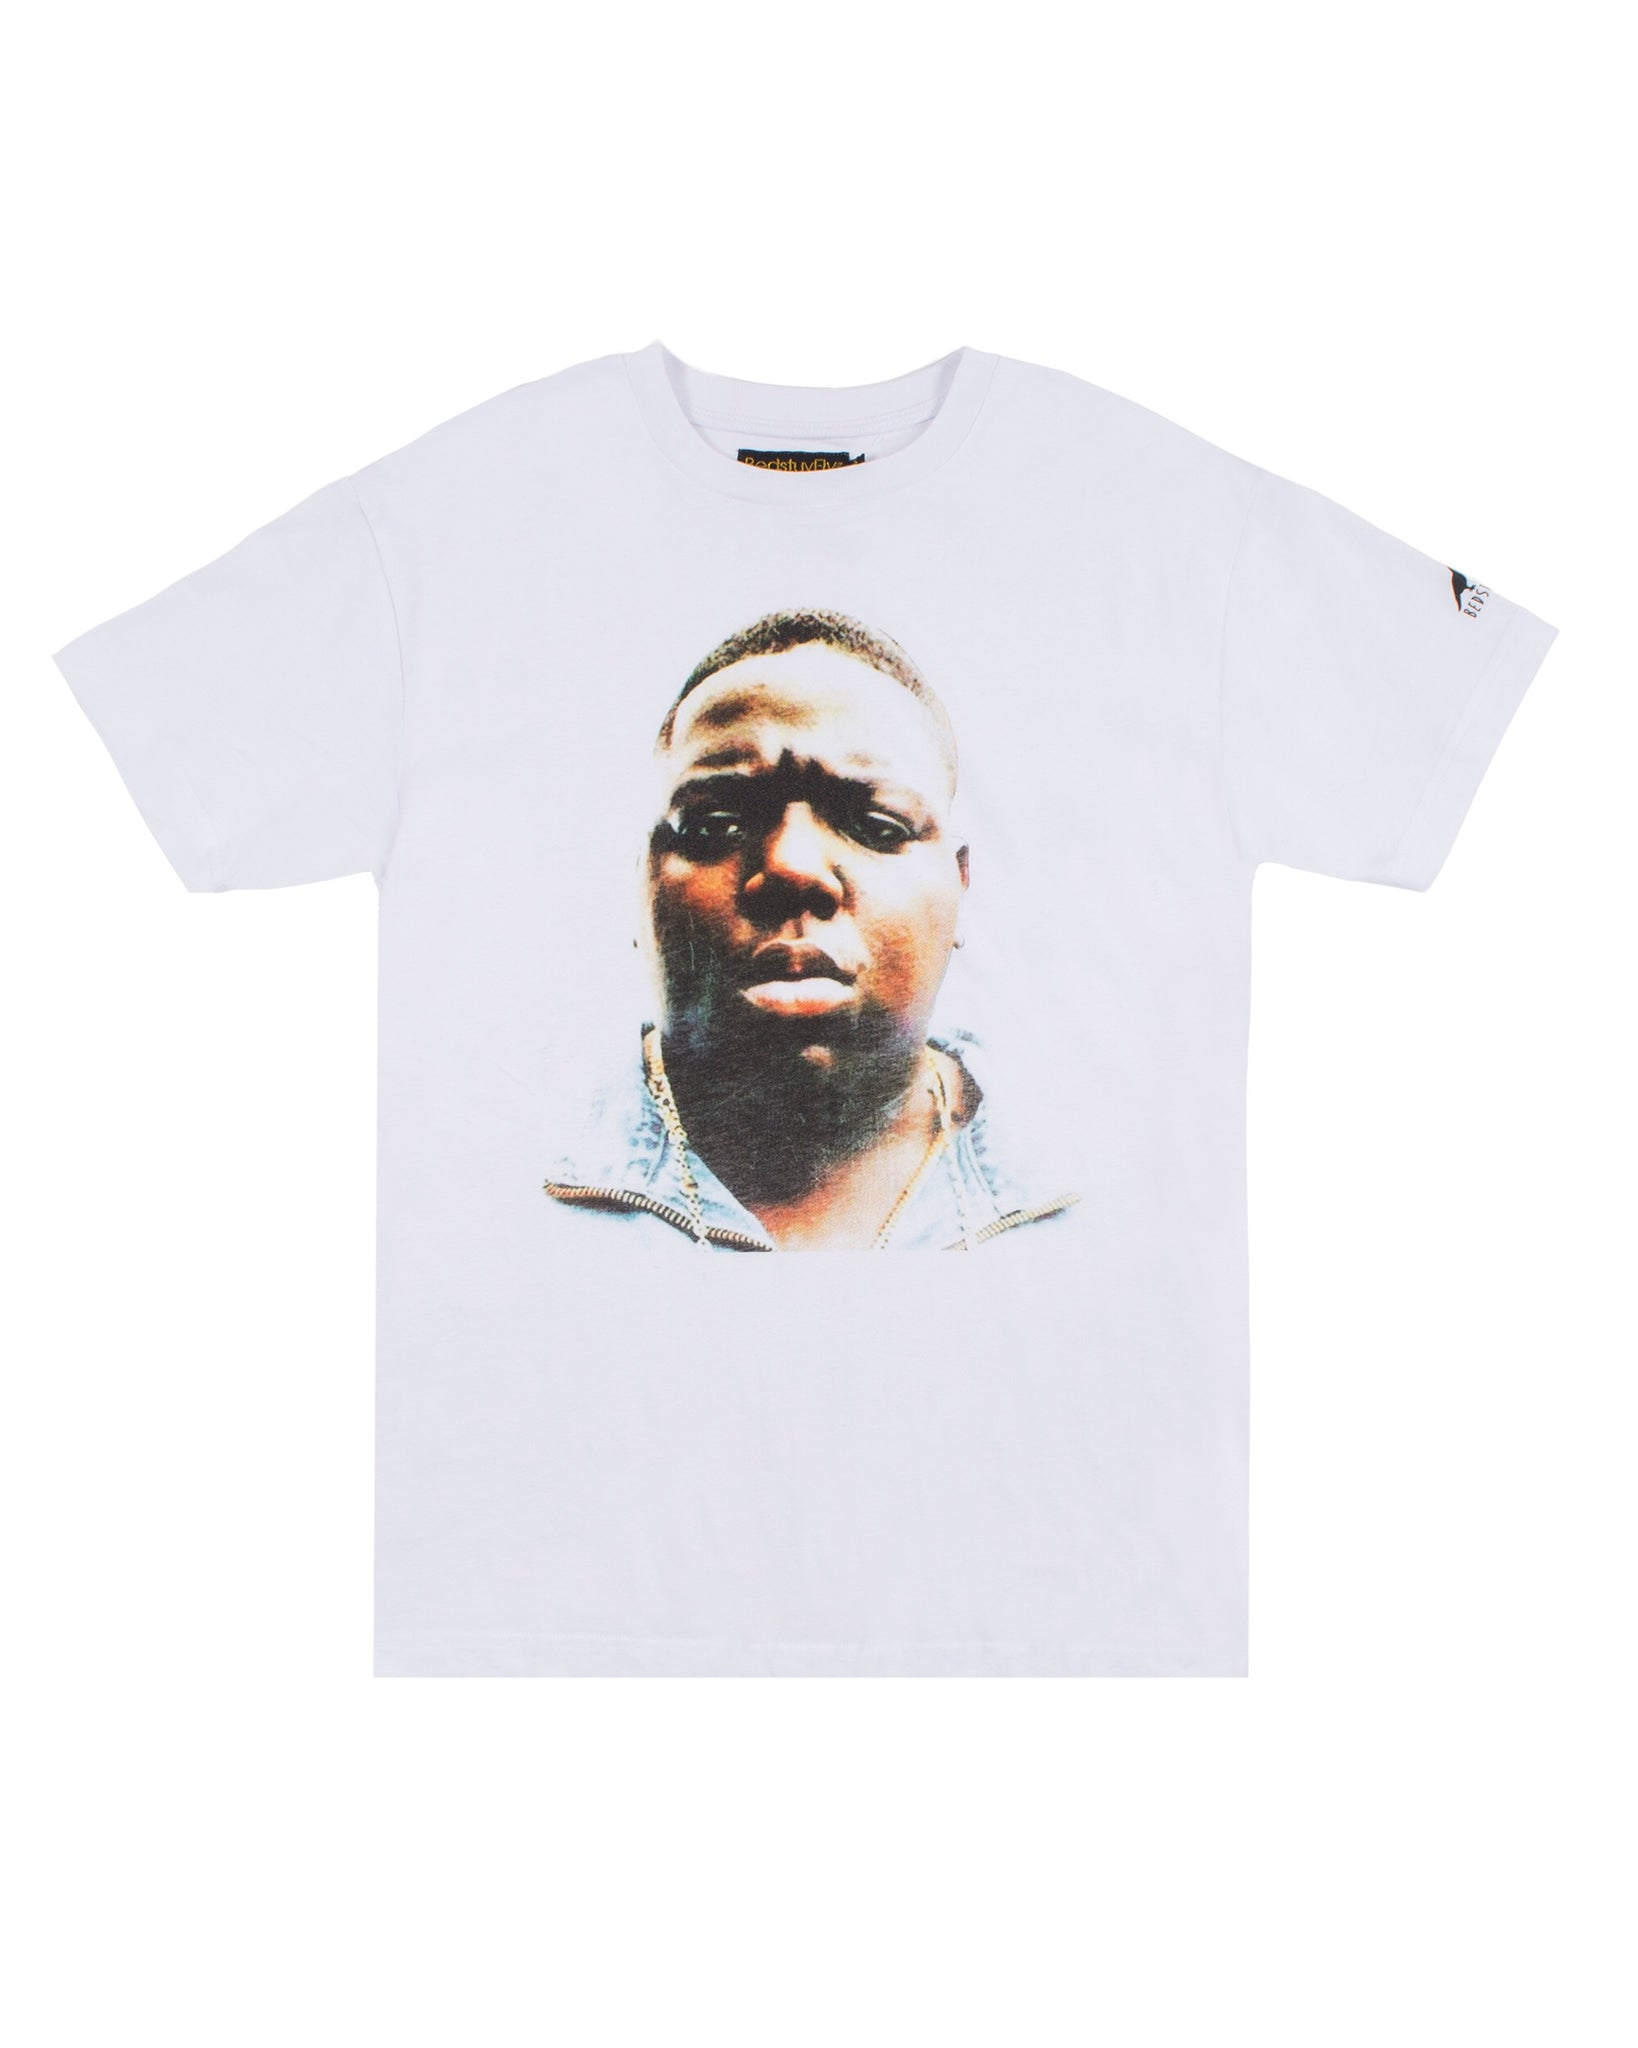 St. James T-Shirt (Wht)